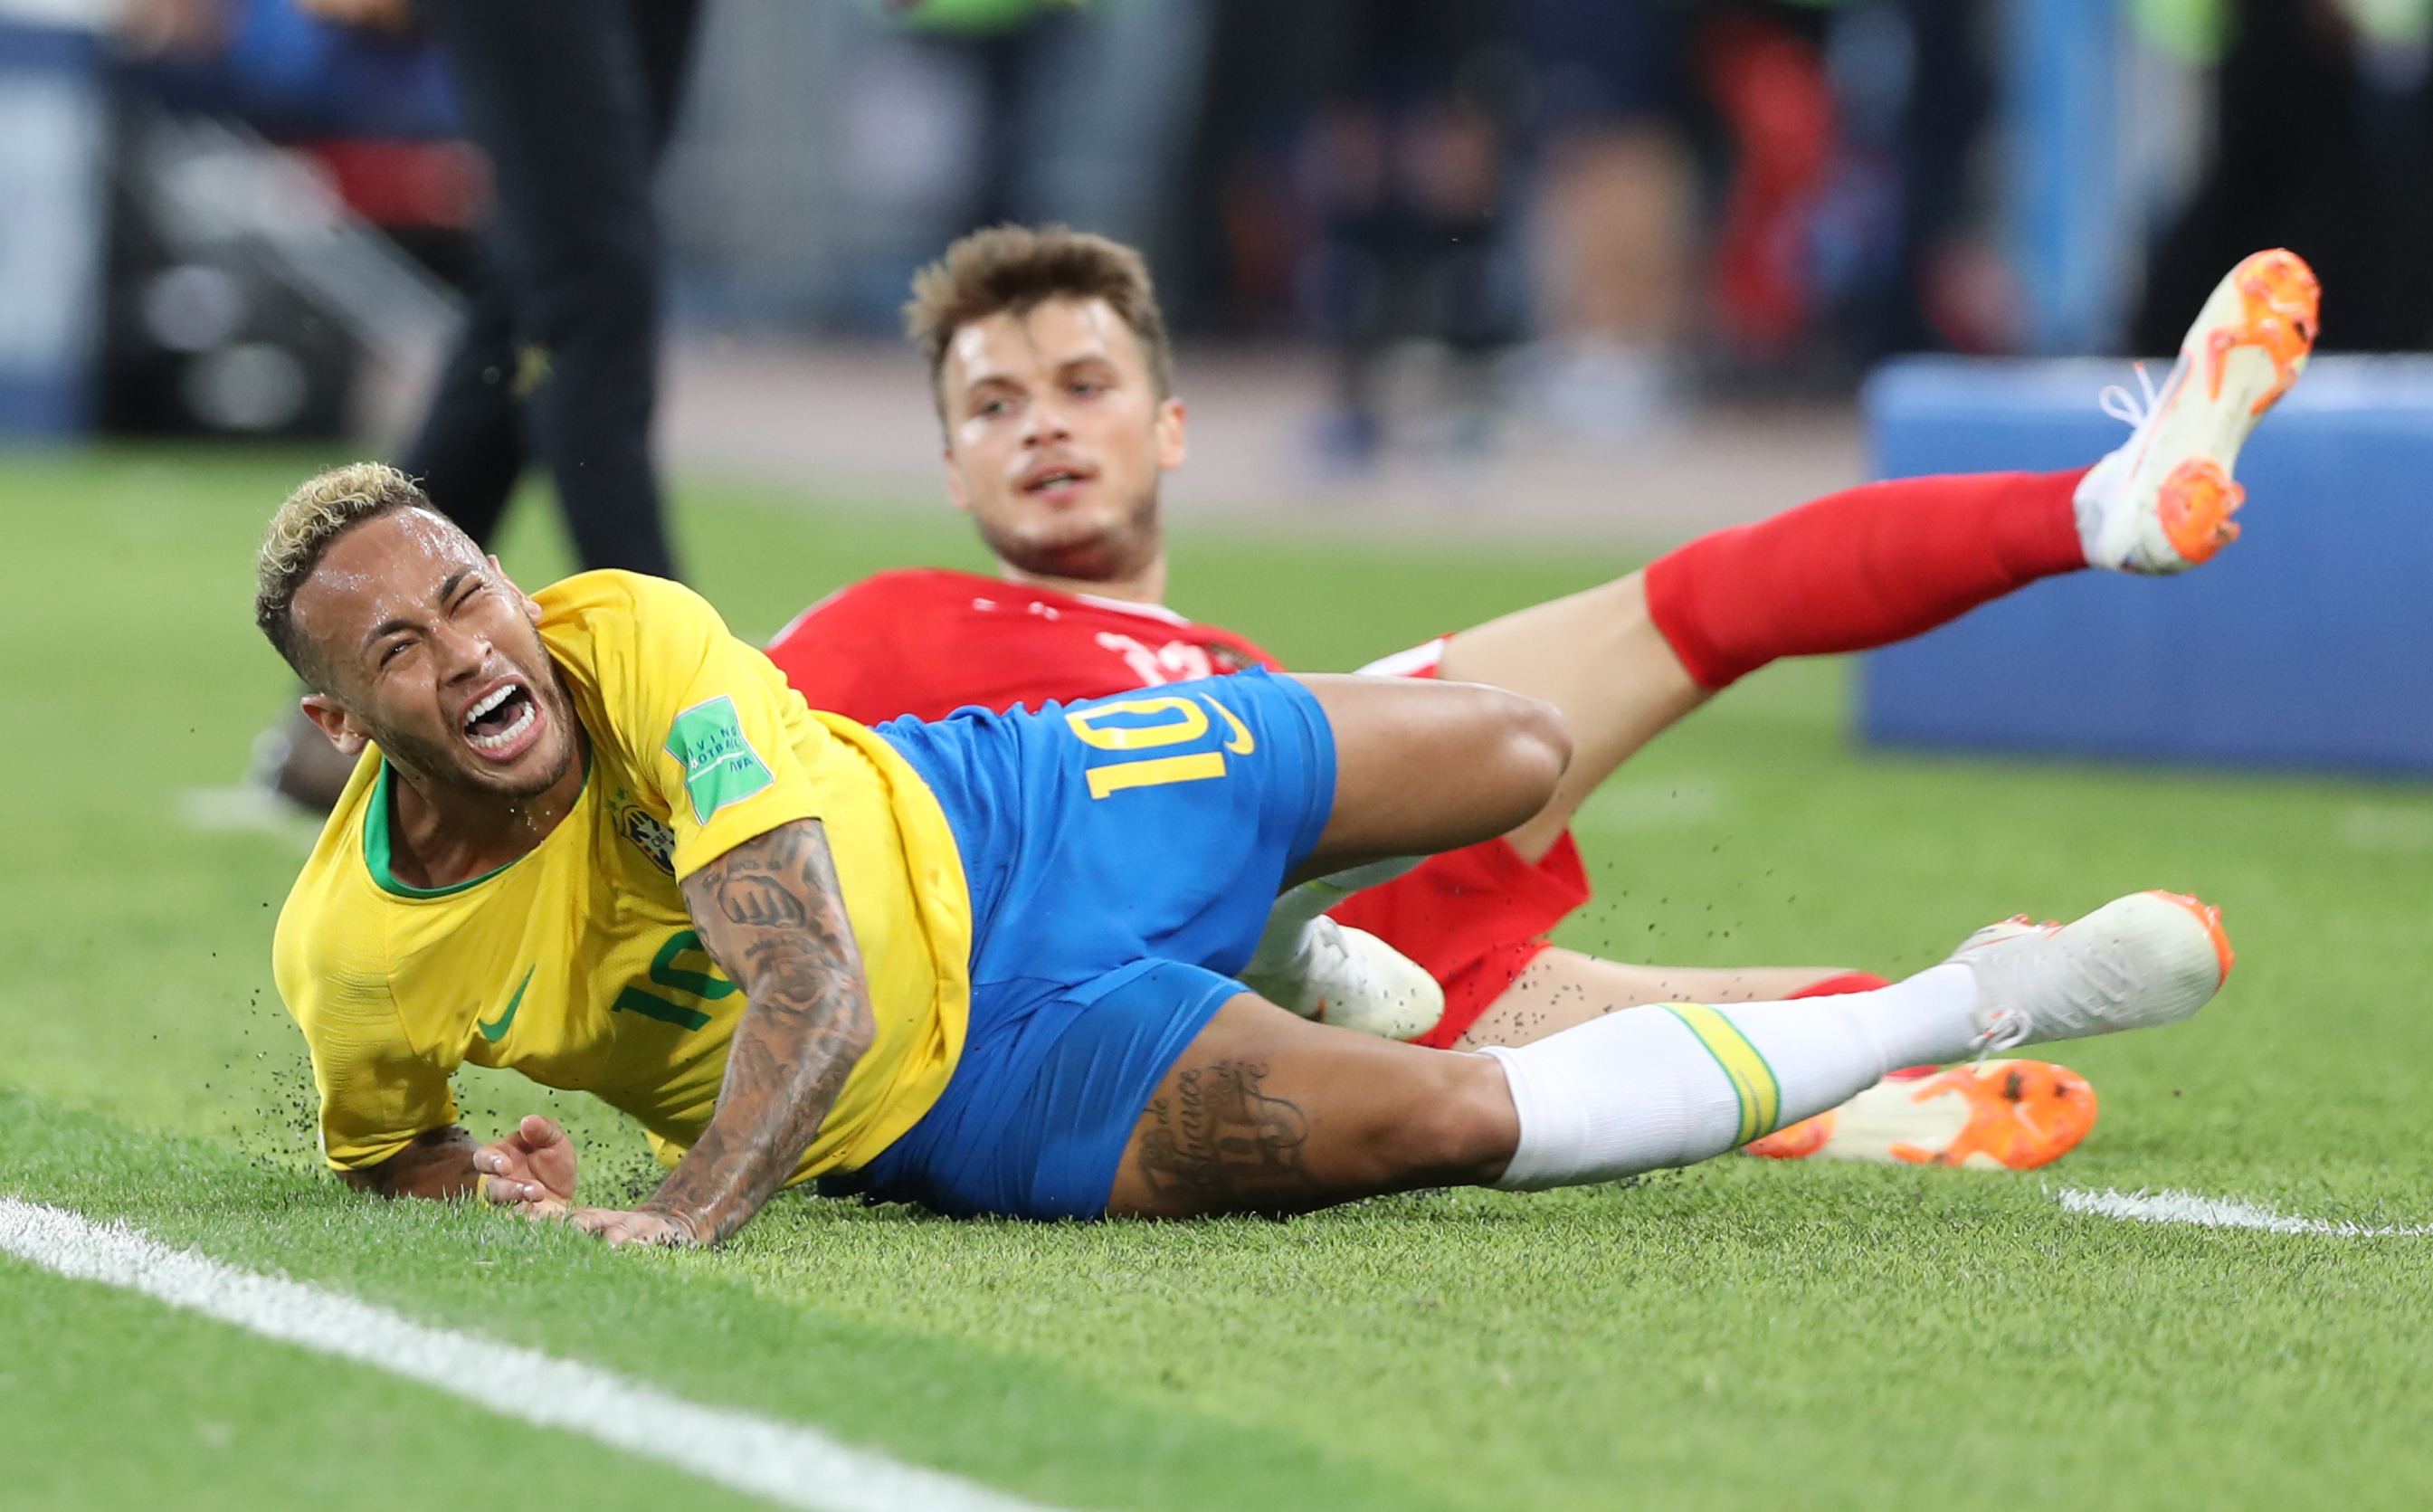 Neymar of Brazil football team gets fouled at FIFA World Cup.